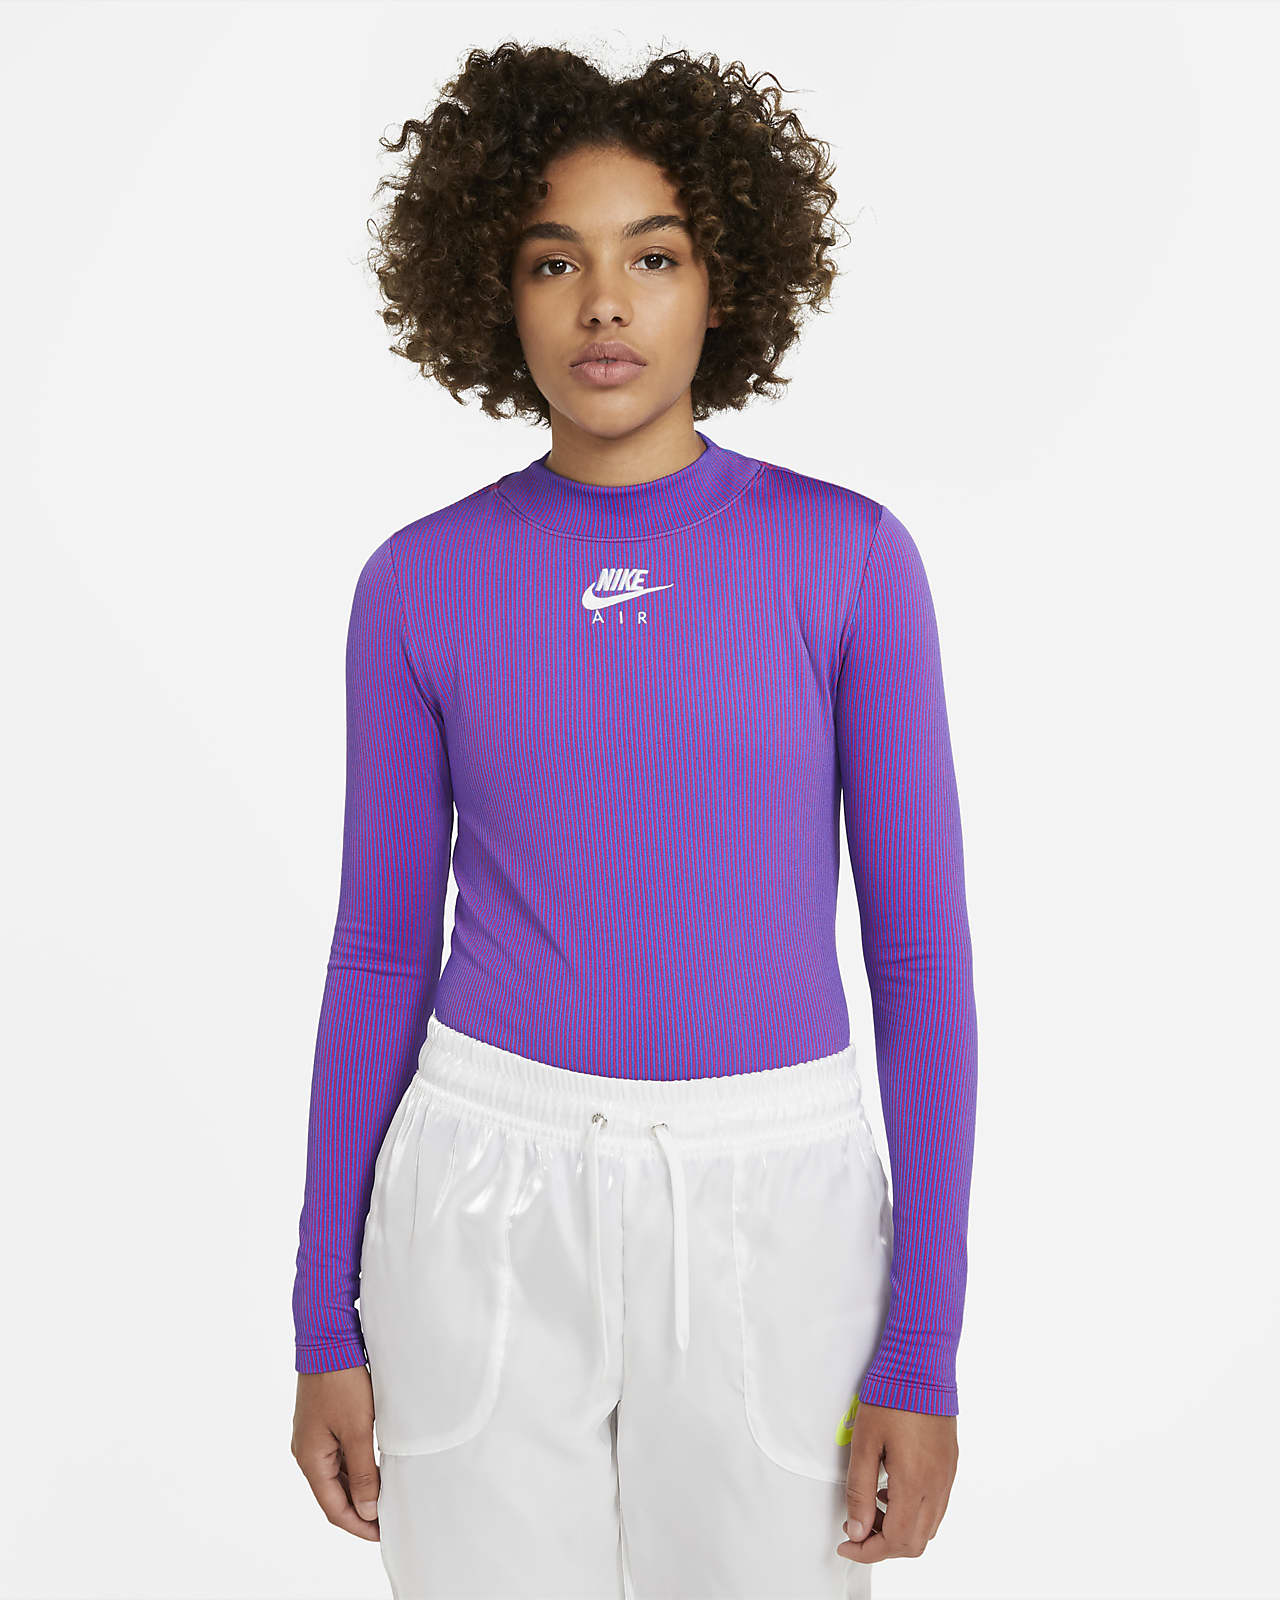 Nike Air Women's Mock Neck Long Sleeve